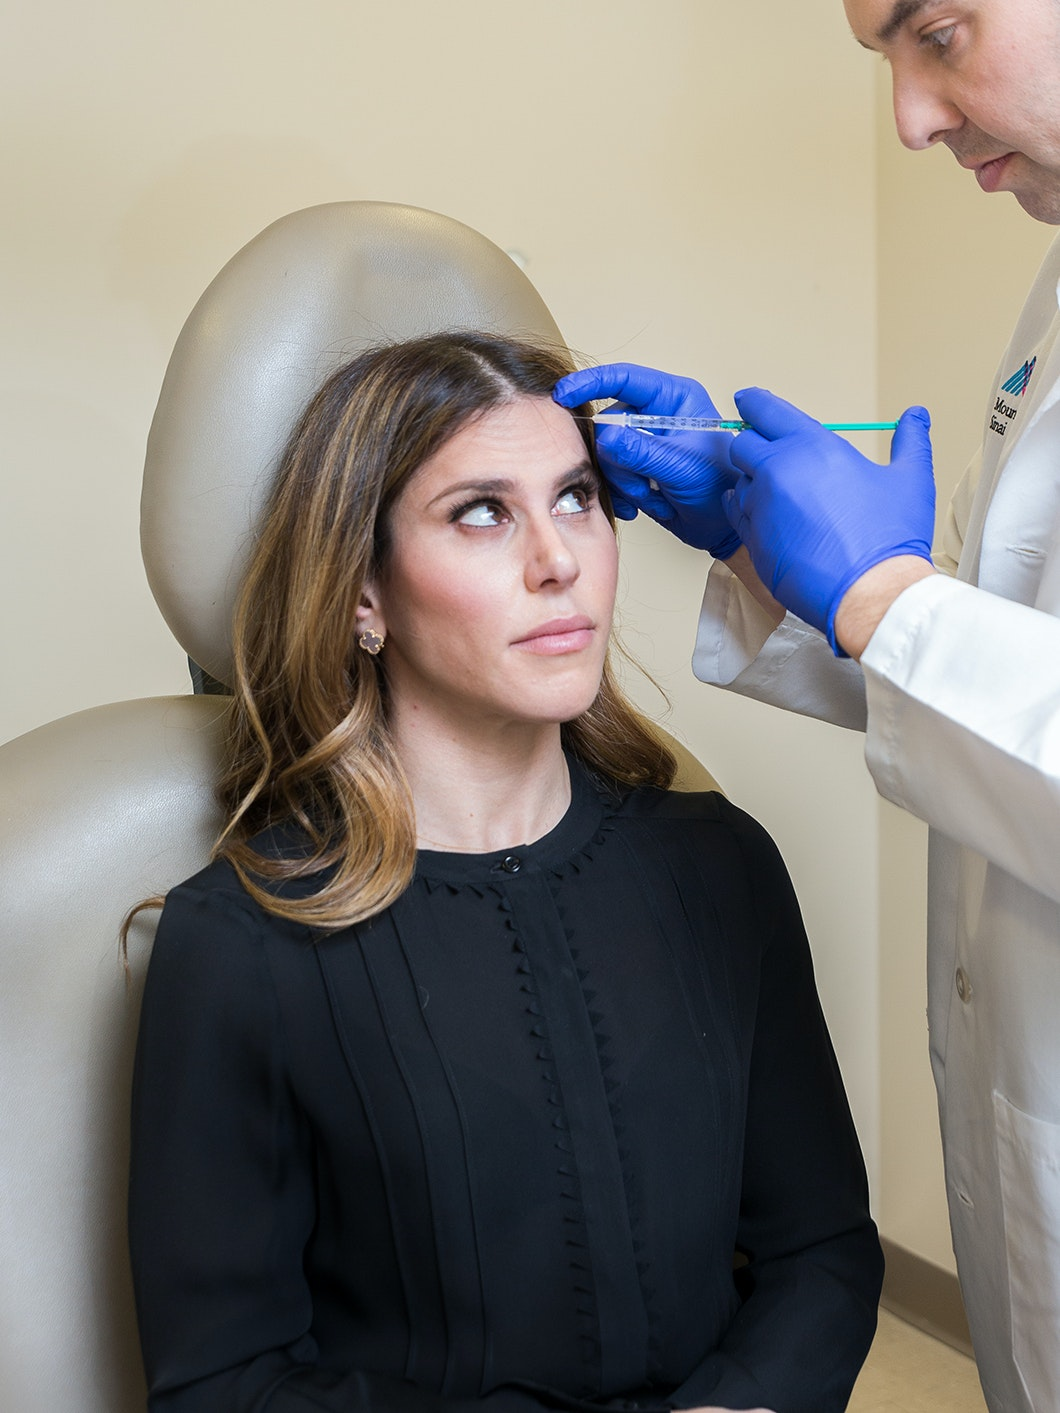 Woman getting injected in her forehead